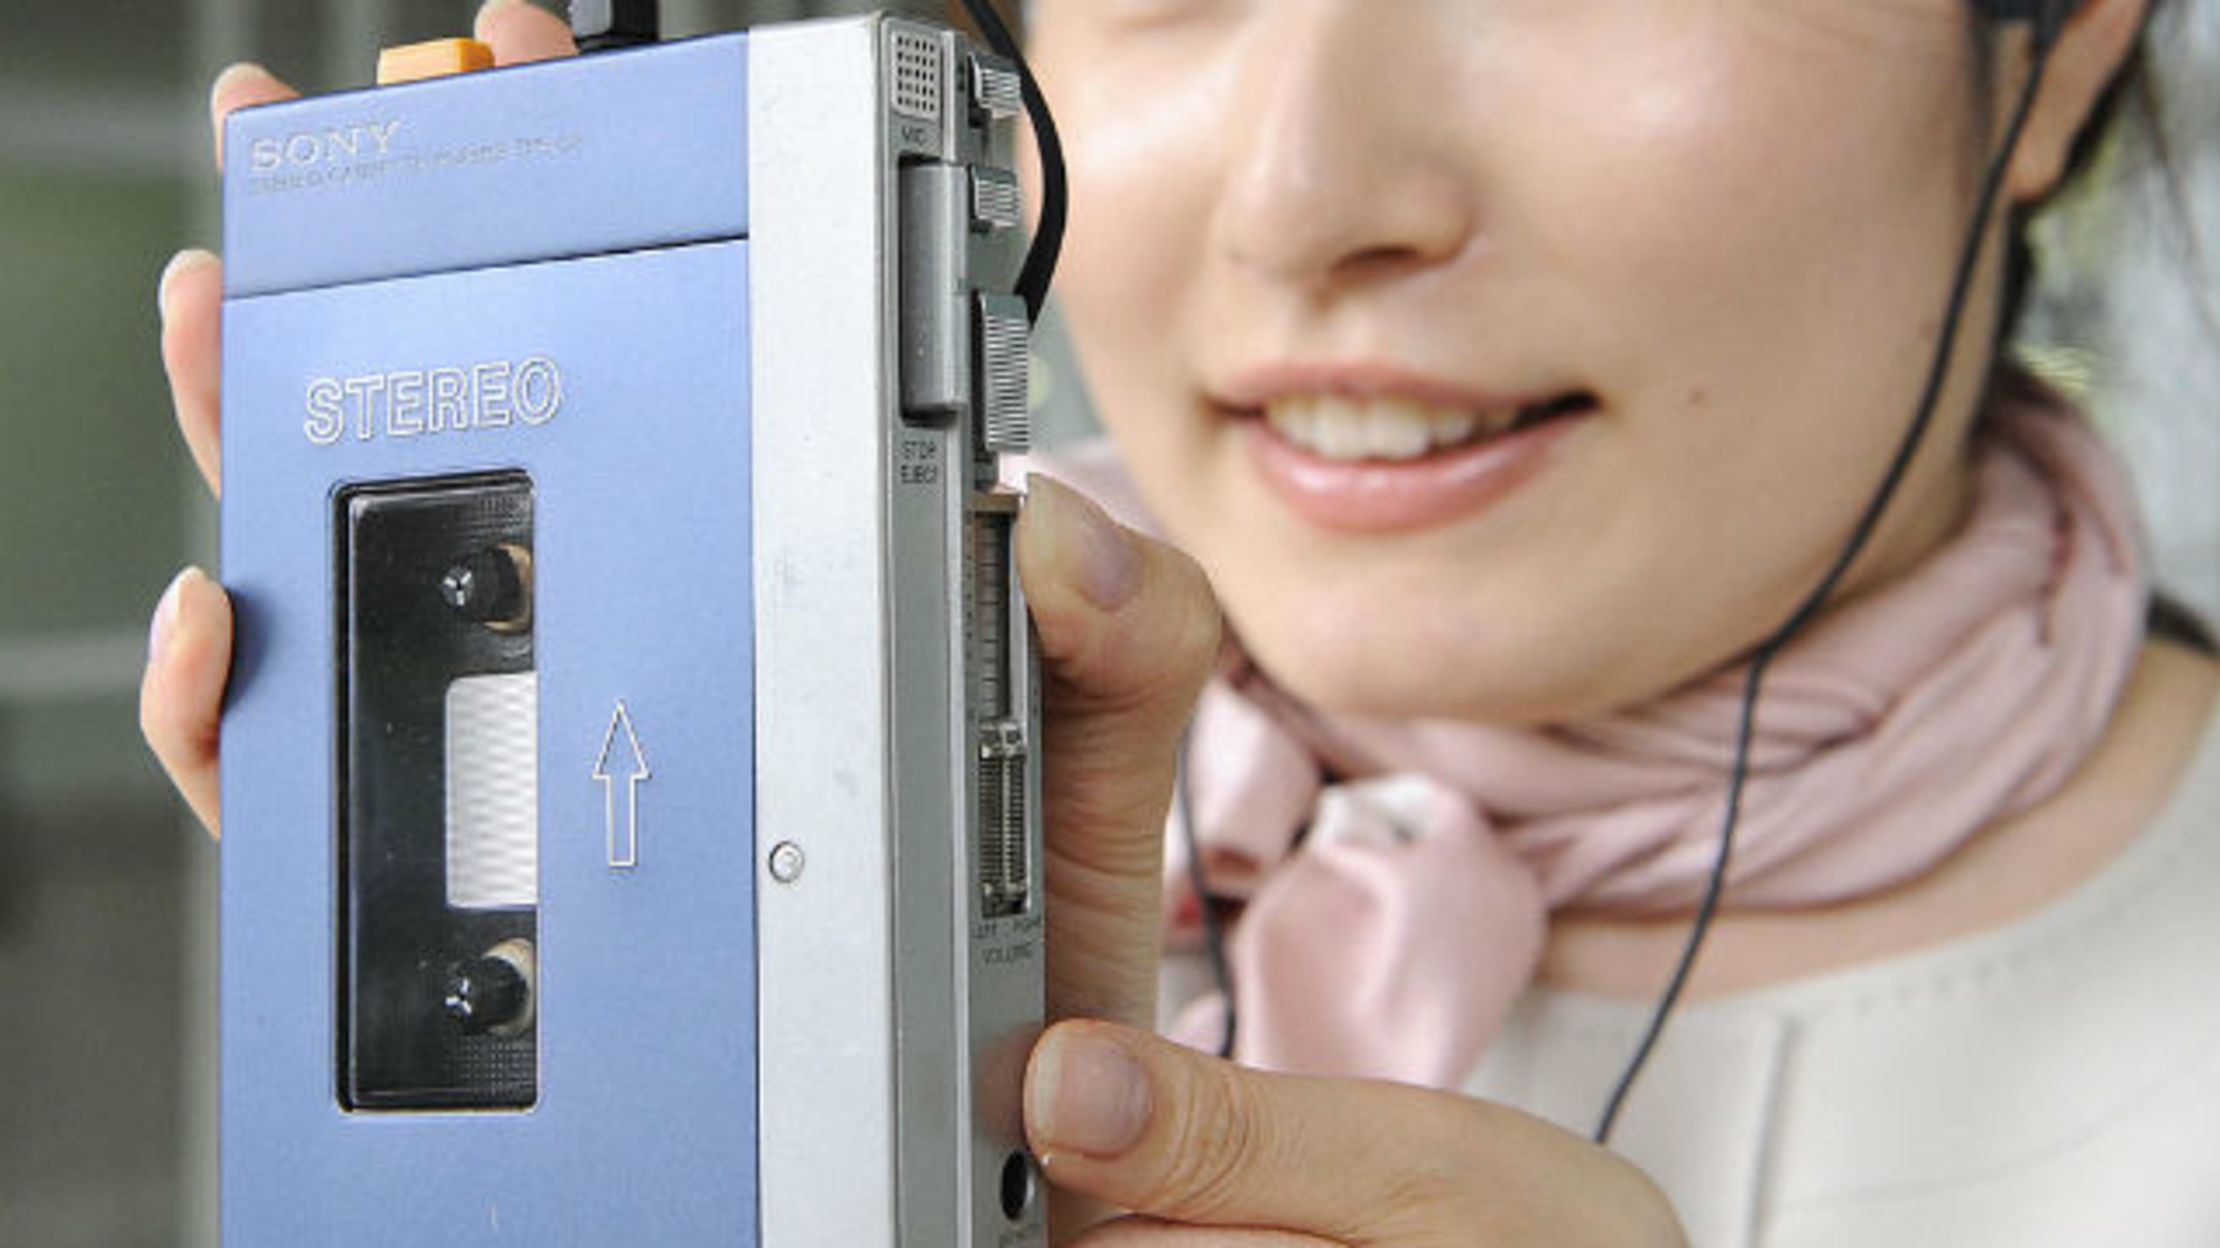 10 Portable Facts About the Walkman | Mental Floss